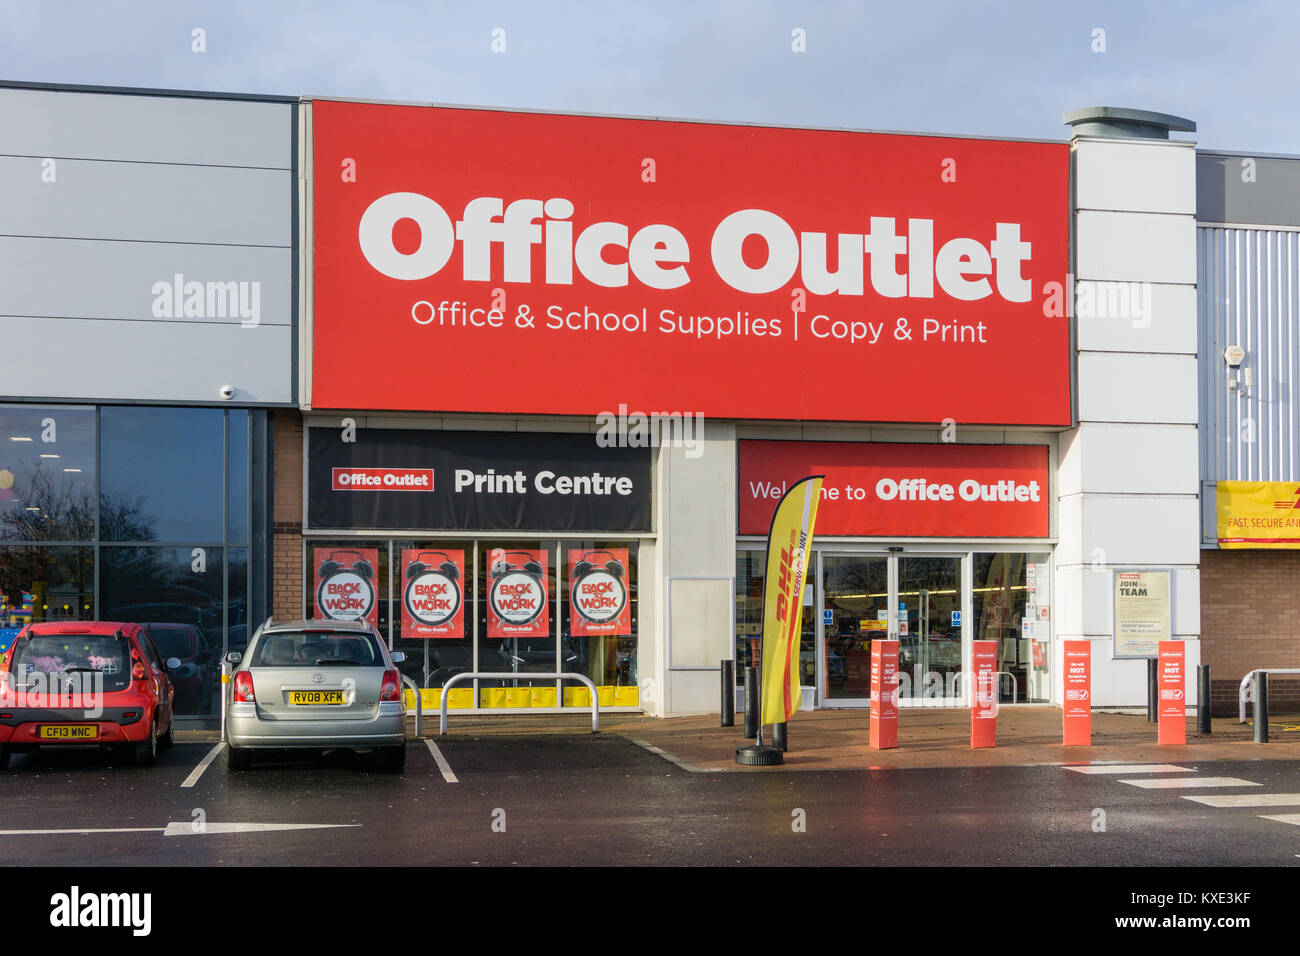 office the shop. The Shop Front Of Office Outlet, A Major UK Retailer Selling Supplies, Furniture